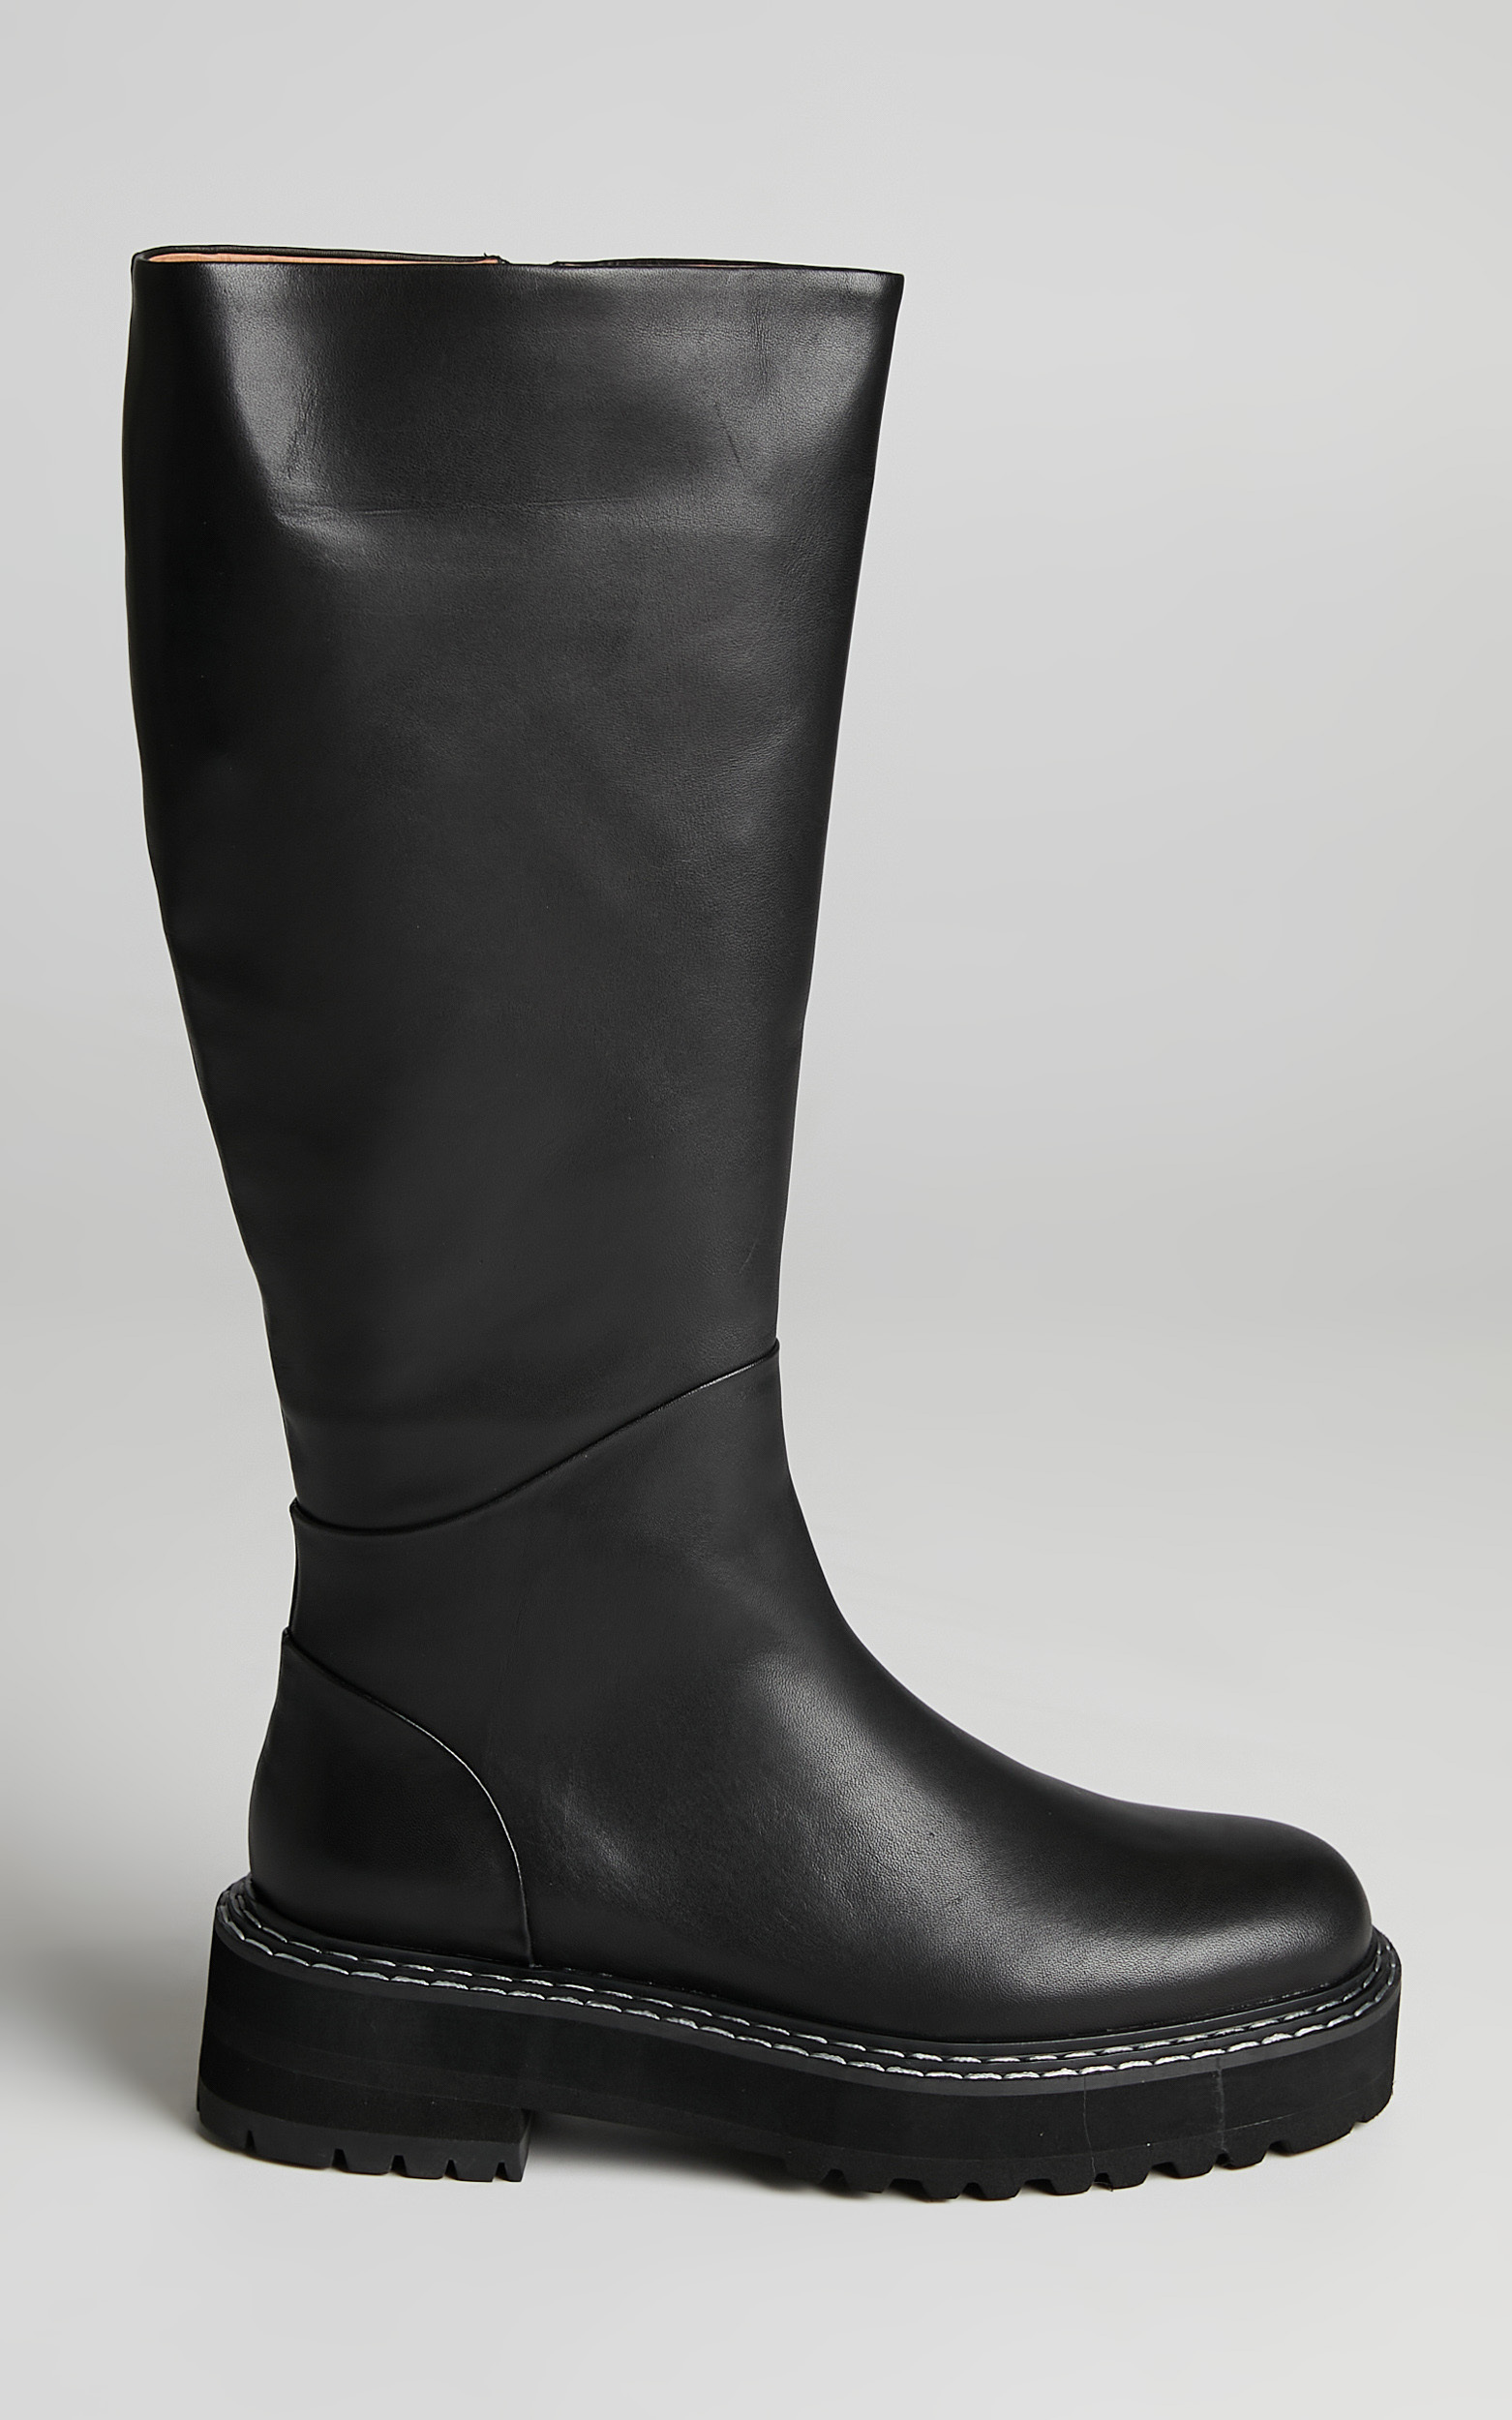 Alias Mae - Rohan Boots in Black Burnished - 10.5, BLK1, hi-res image number null